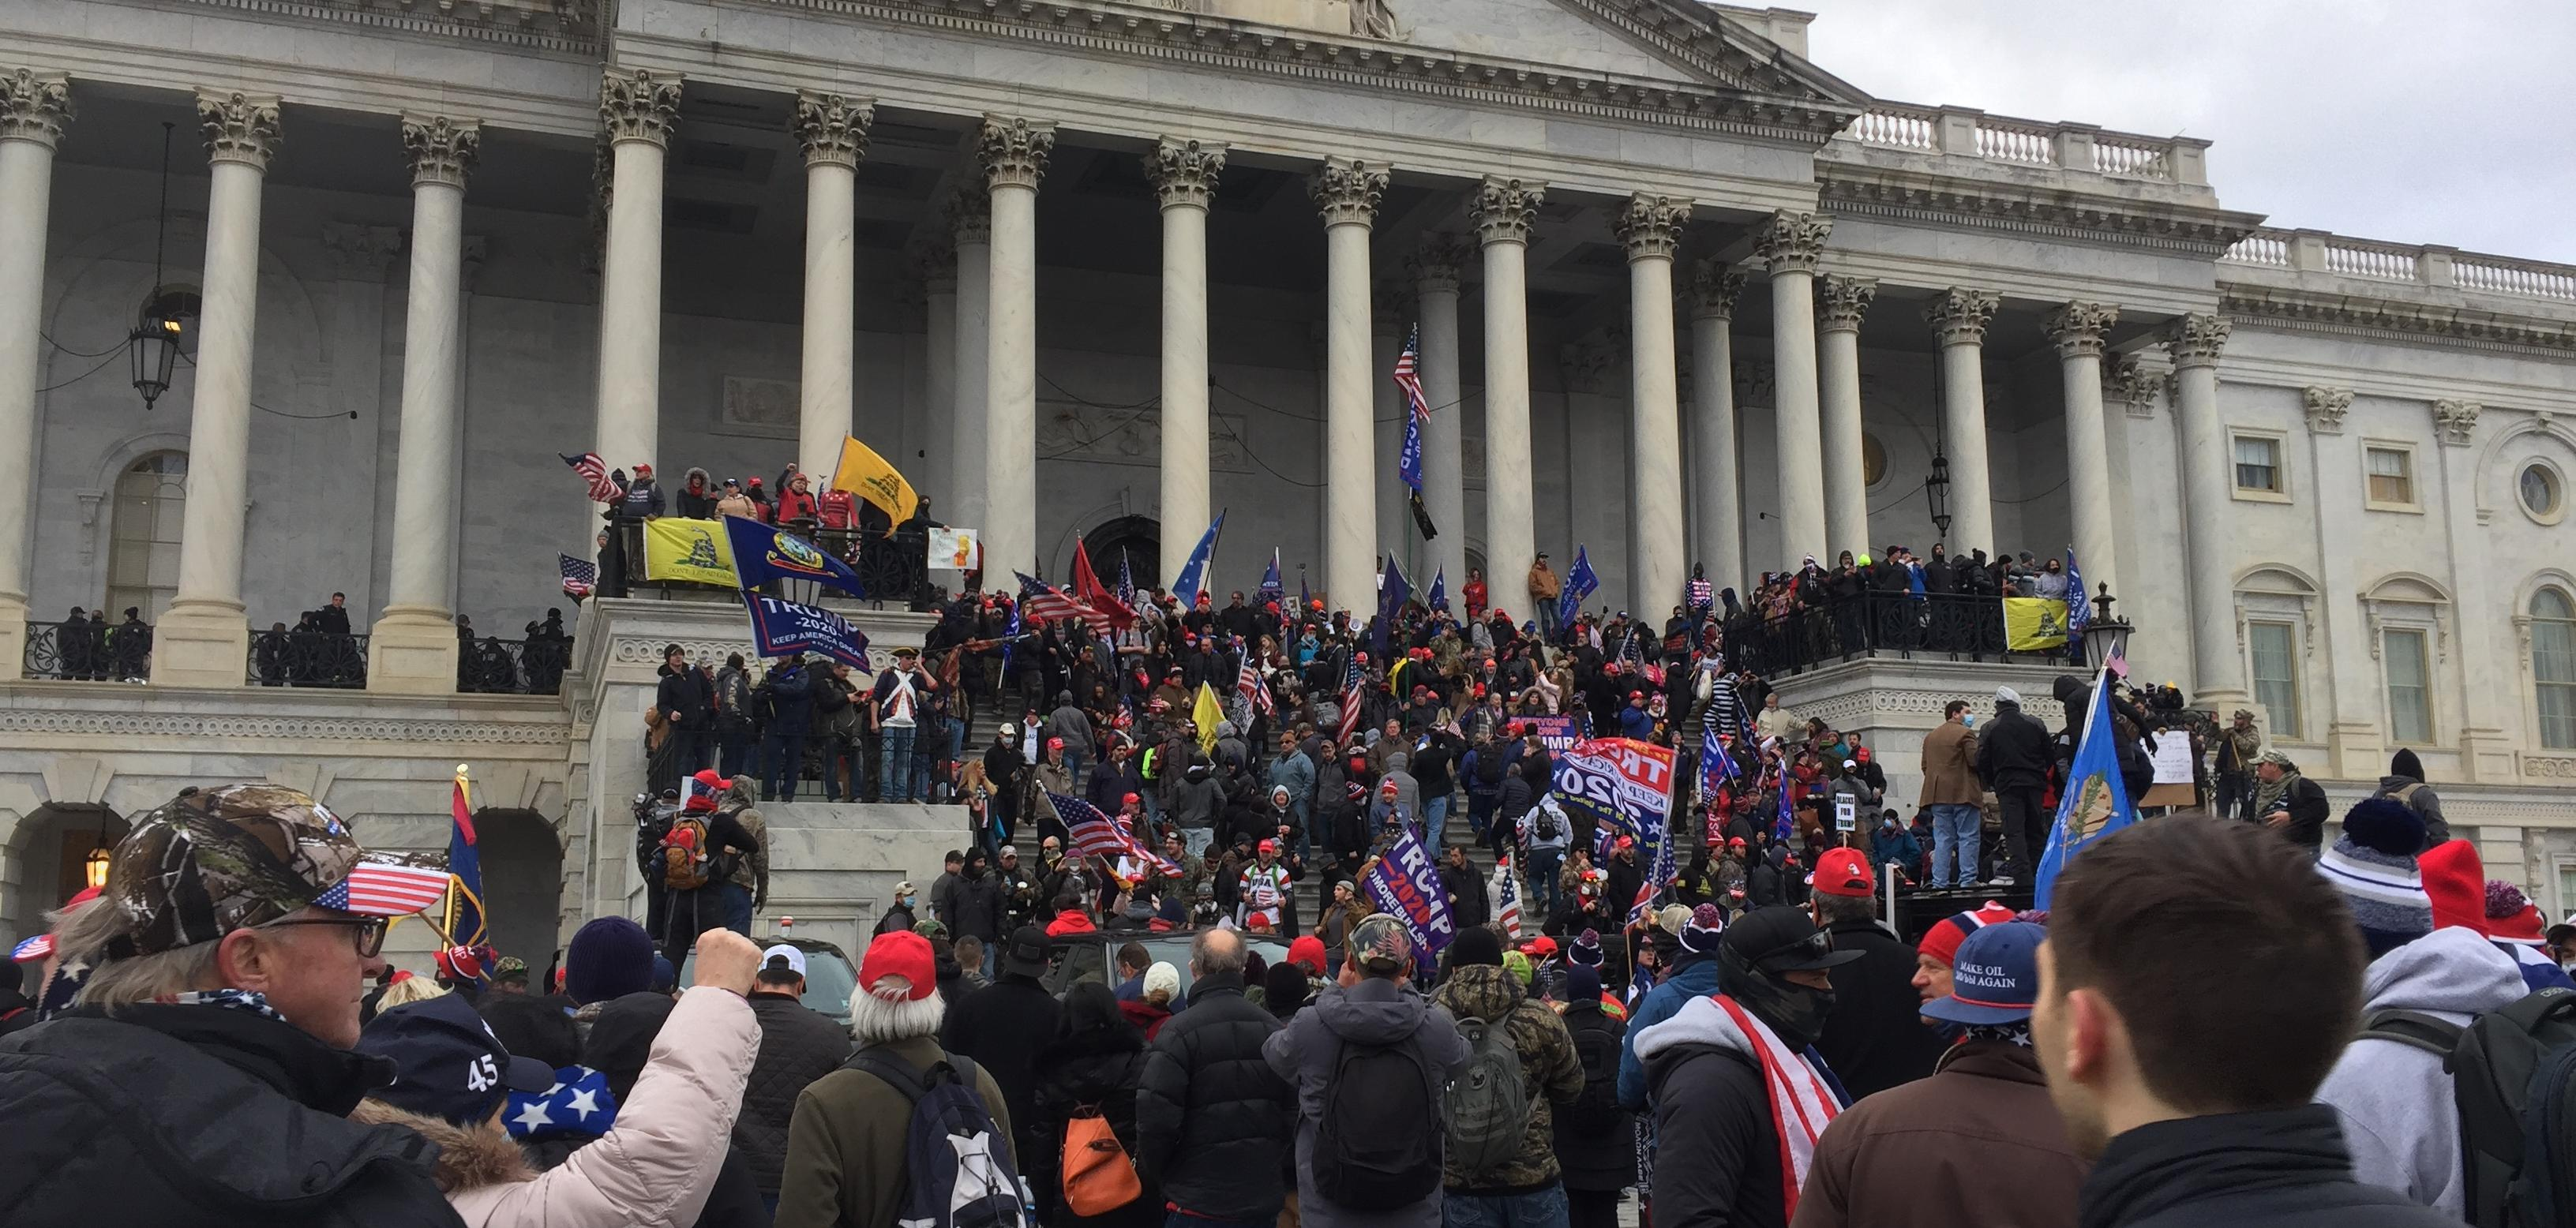 A group of right wing protesters outside the Capitol building in Washington DC. They are climbing the Stairs of the building.